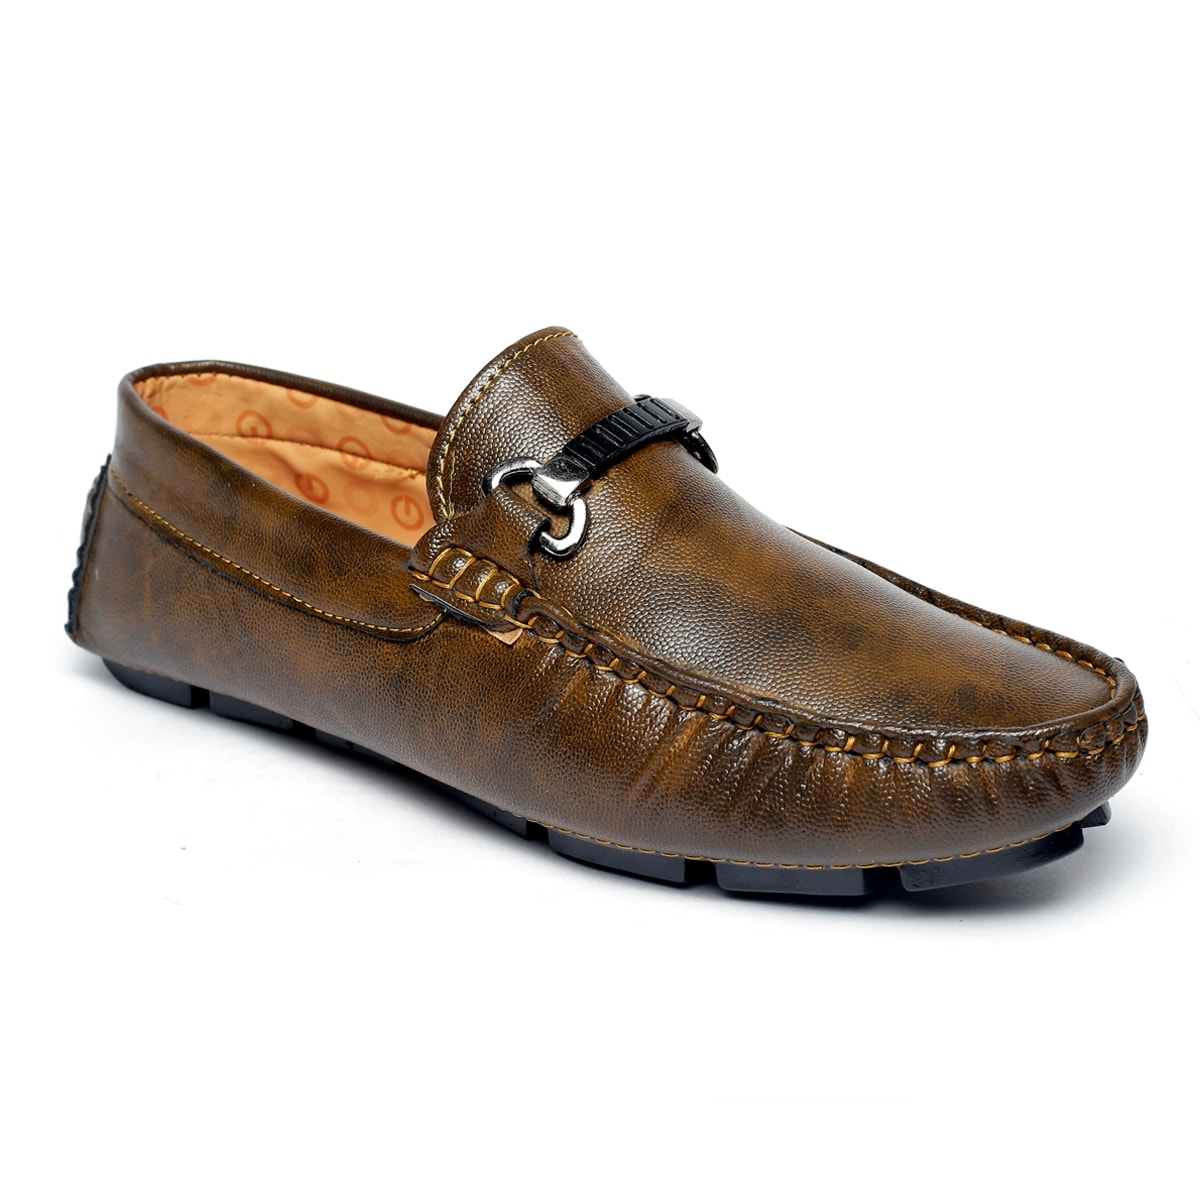 JK PORT COMFORTABLE, FASHIONABLE AND TRENDY LOAFERS JKPLF052BLK (BROWN,6-10,8 PAIR)